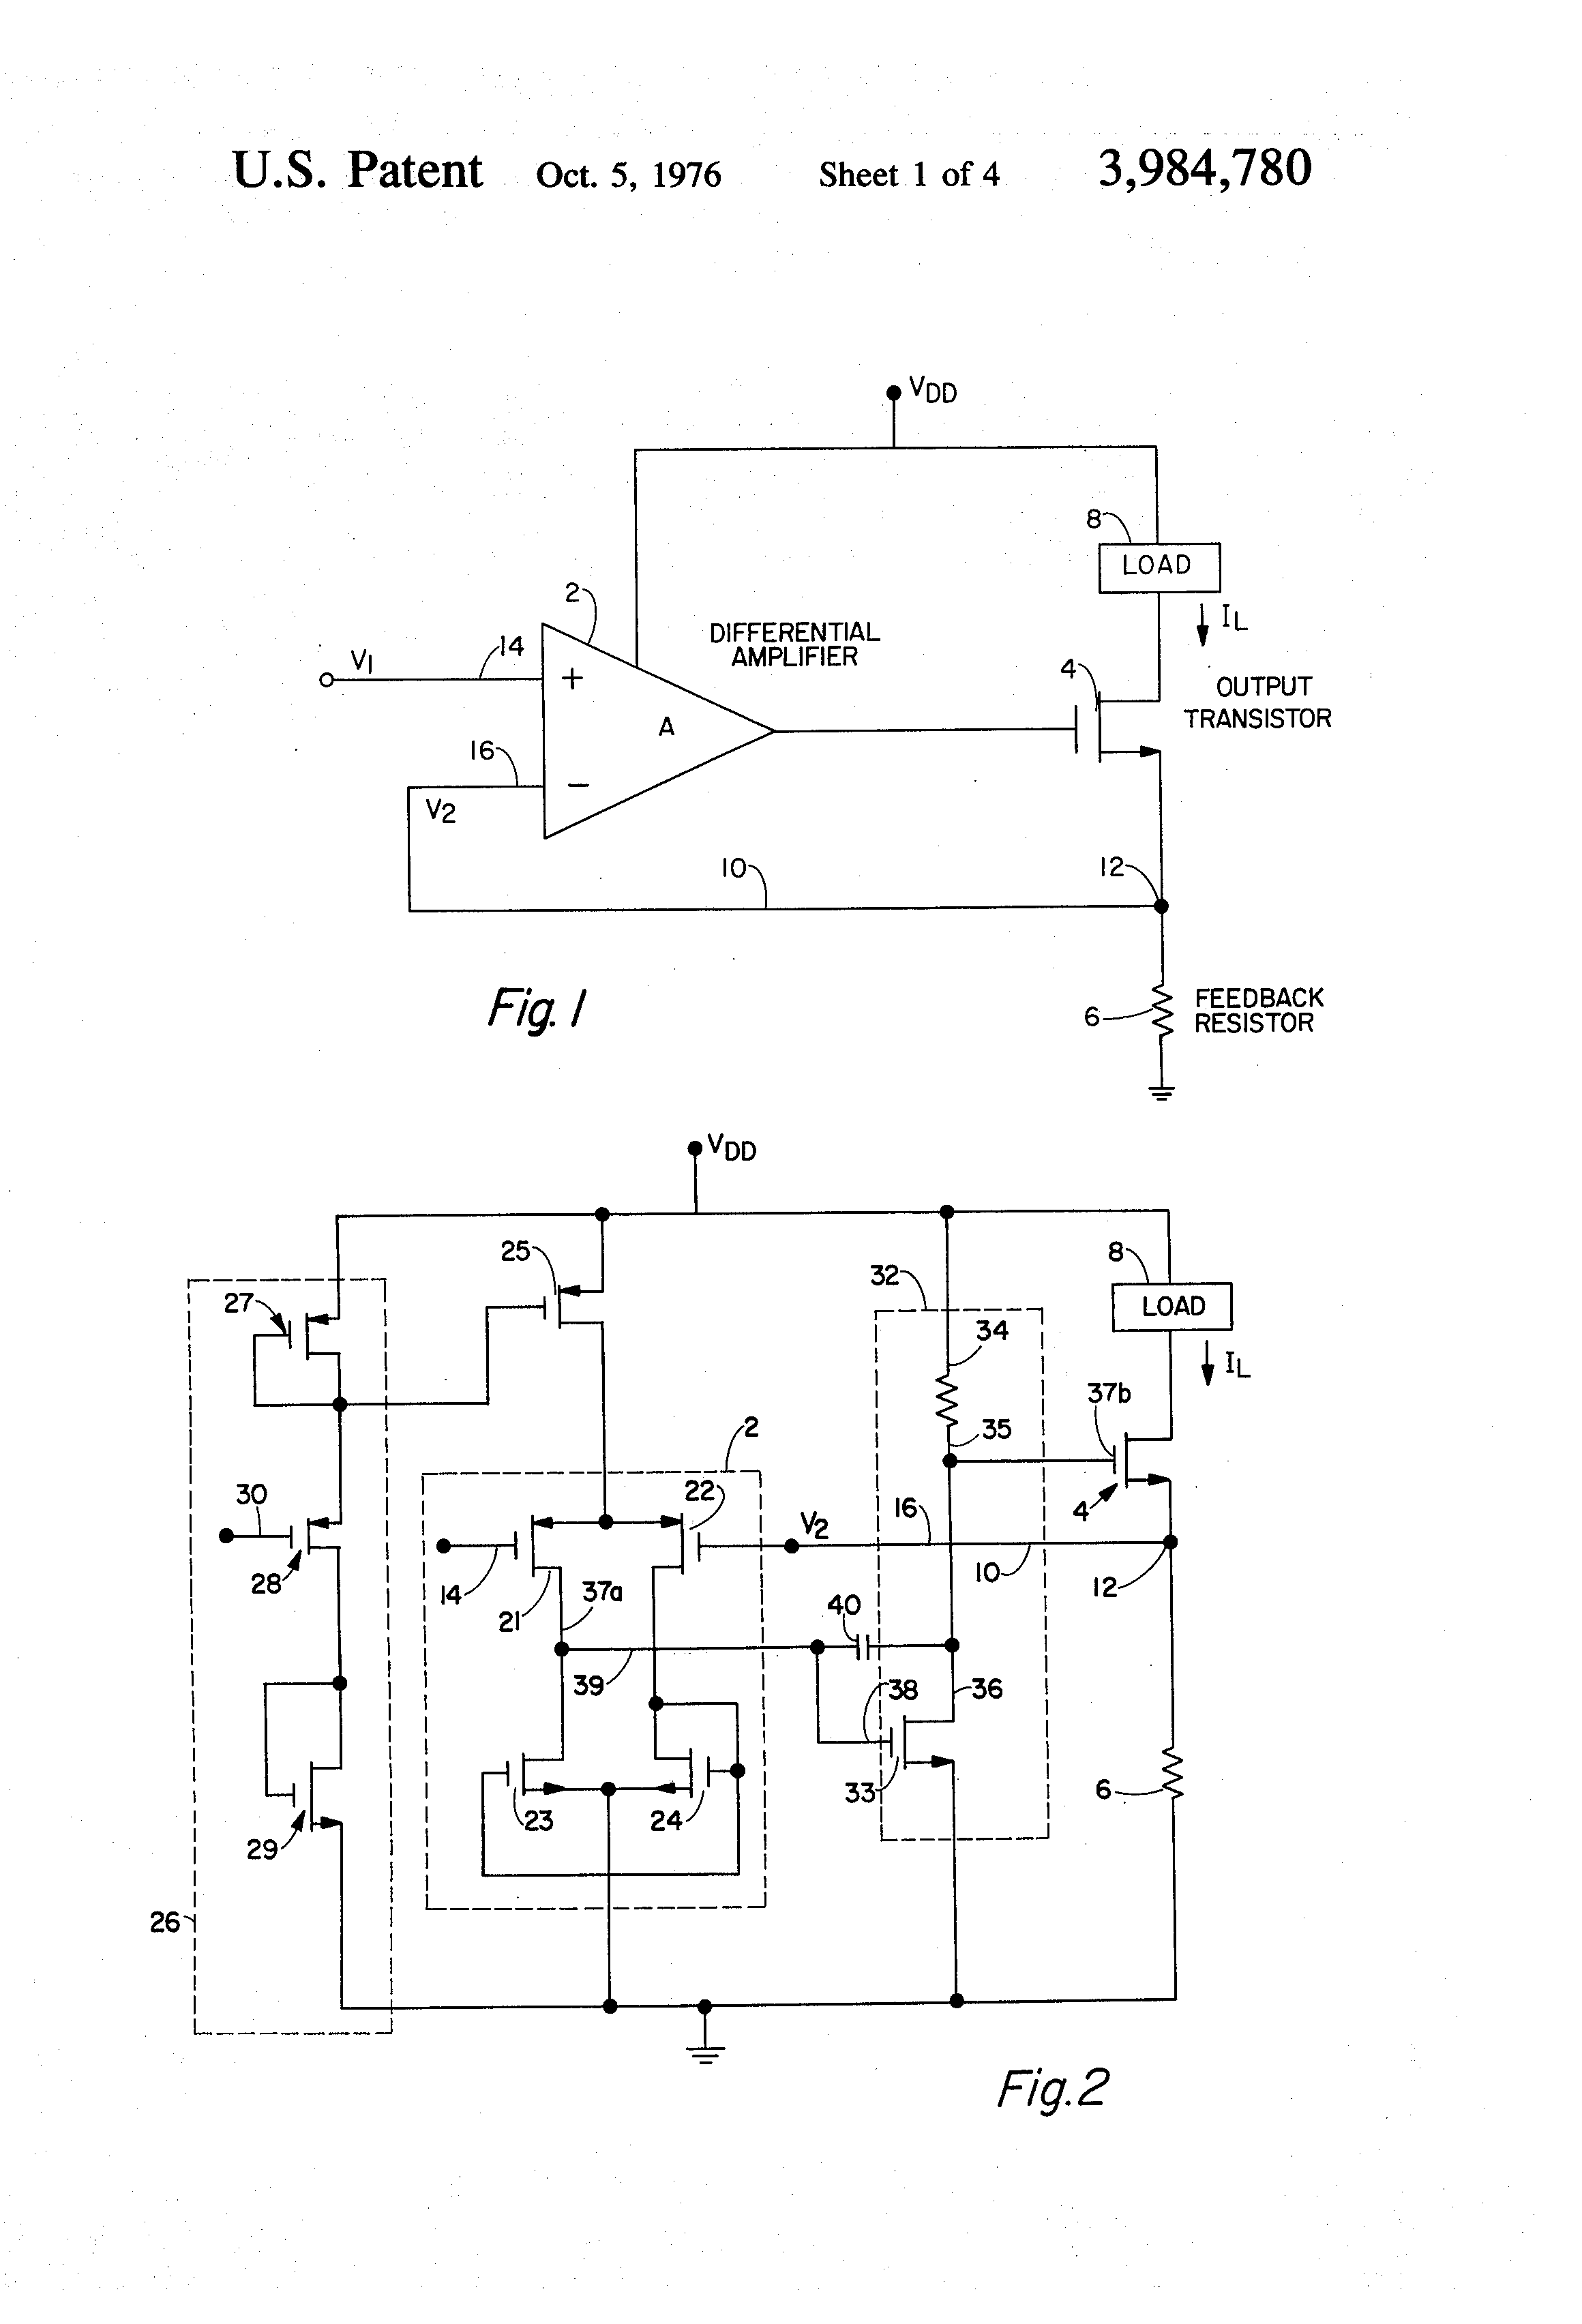 Pictures Of Voltage Controlled Current Source Resistor Patent Us3984780 Cmos